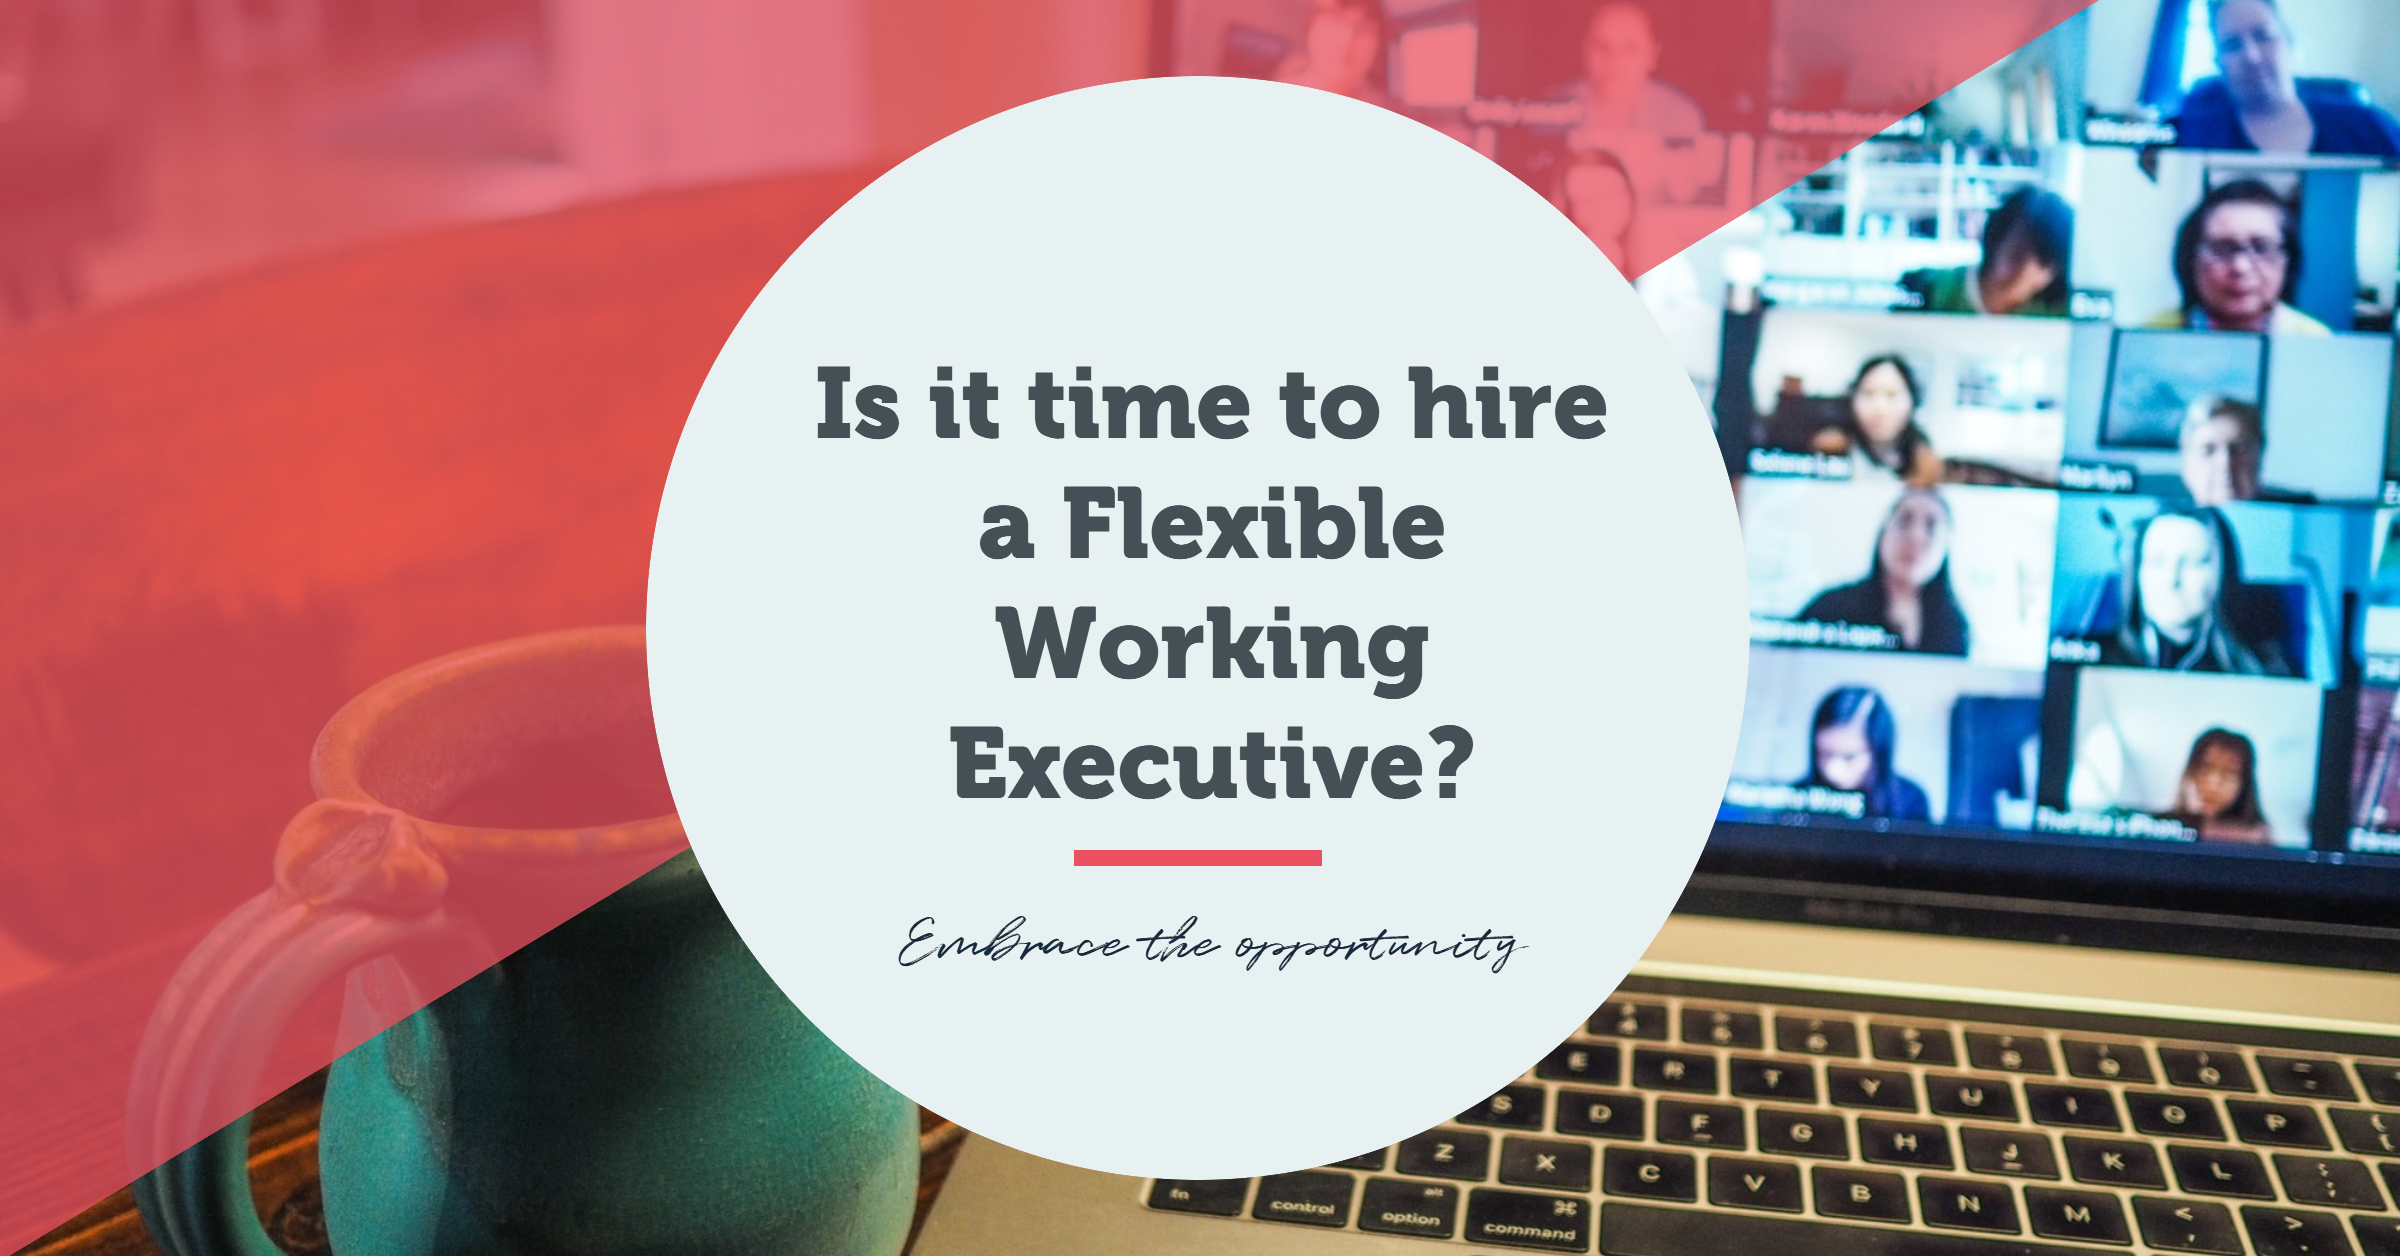 Do you need to hire a dedicated Flexible Working Executive?